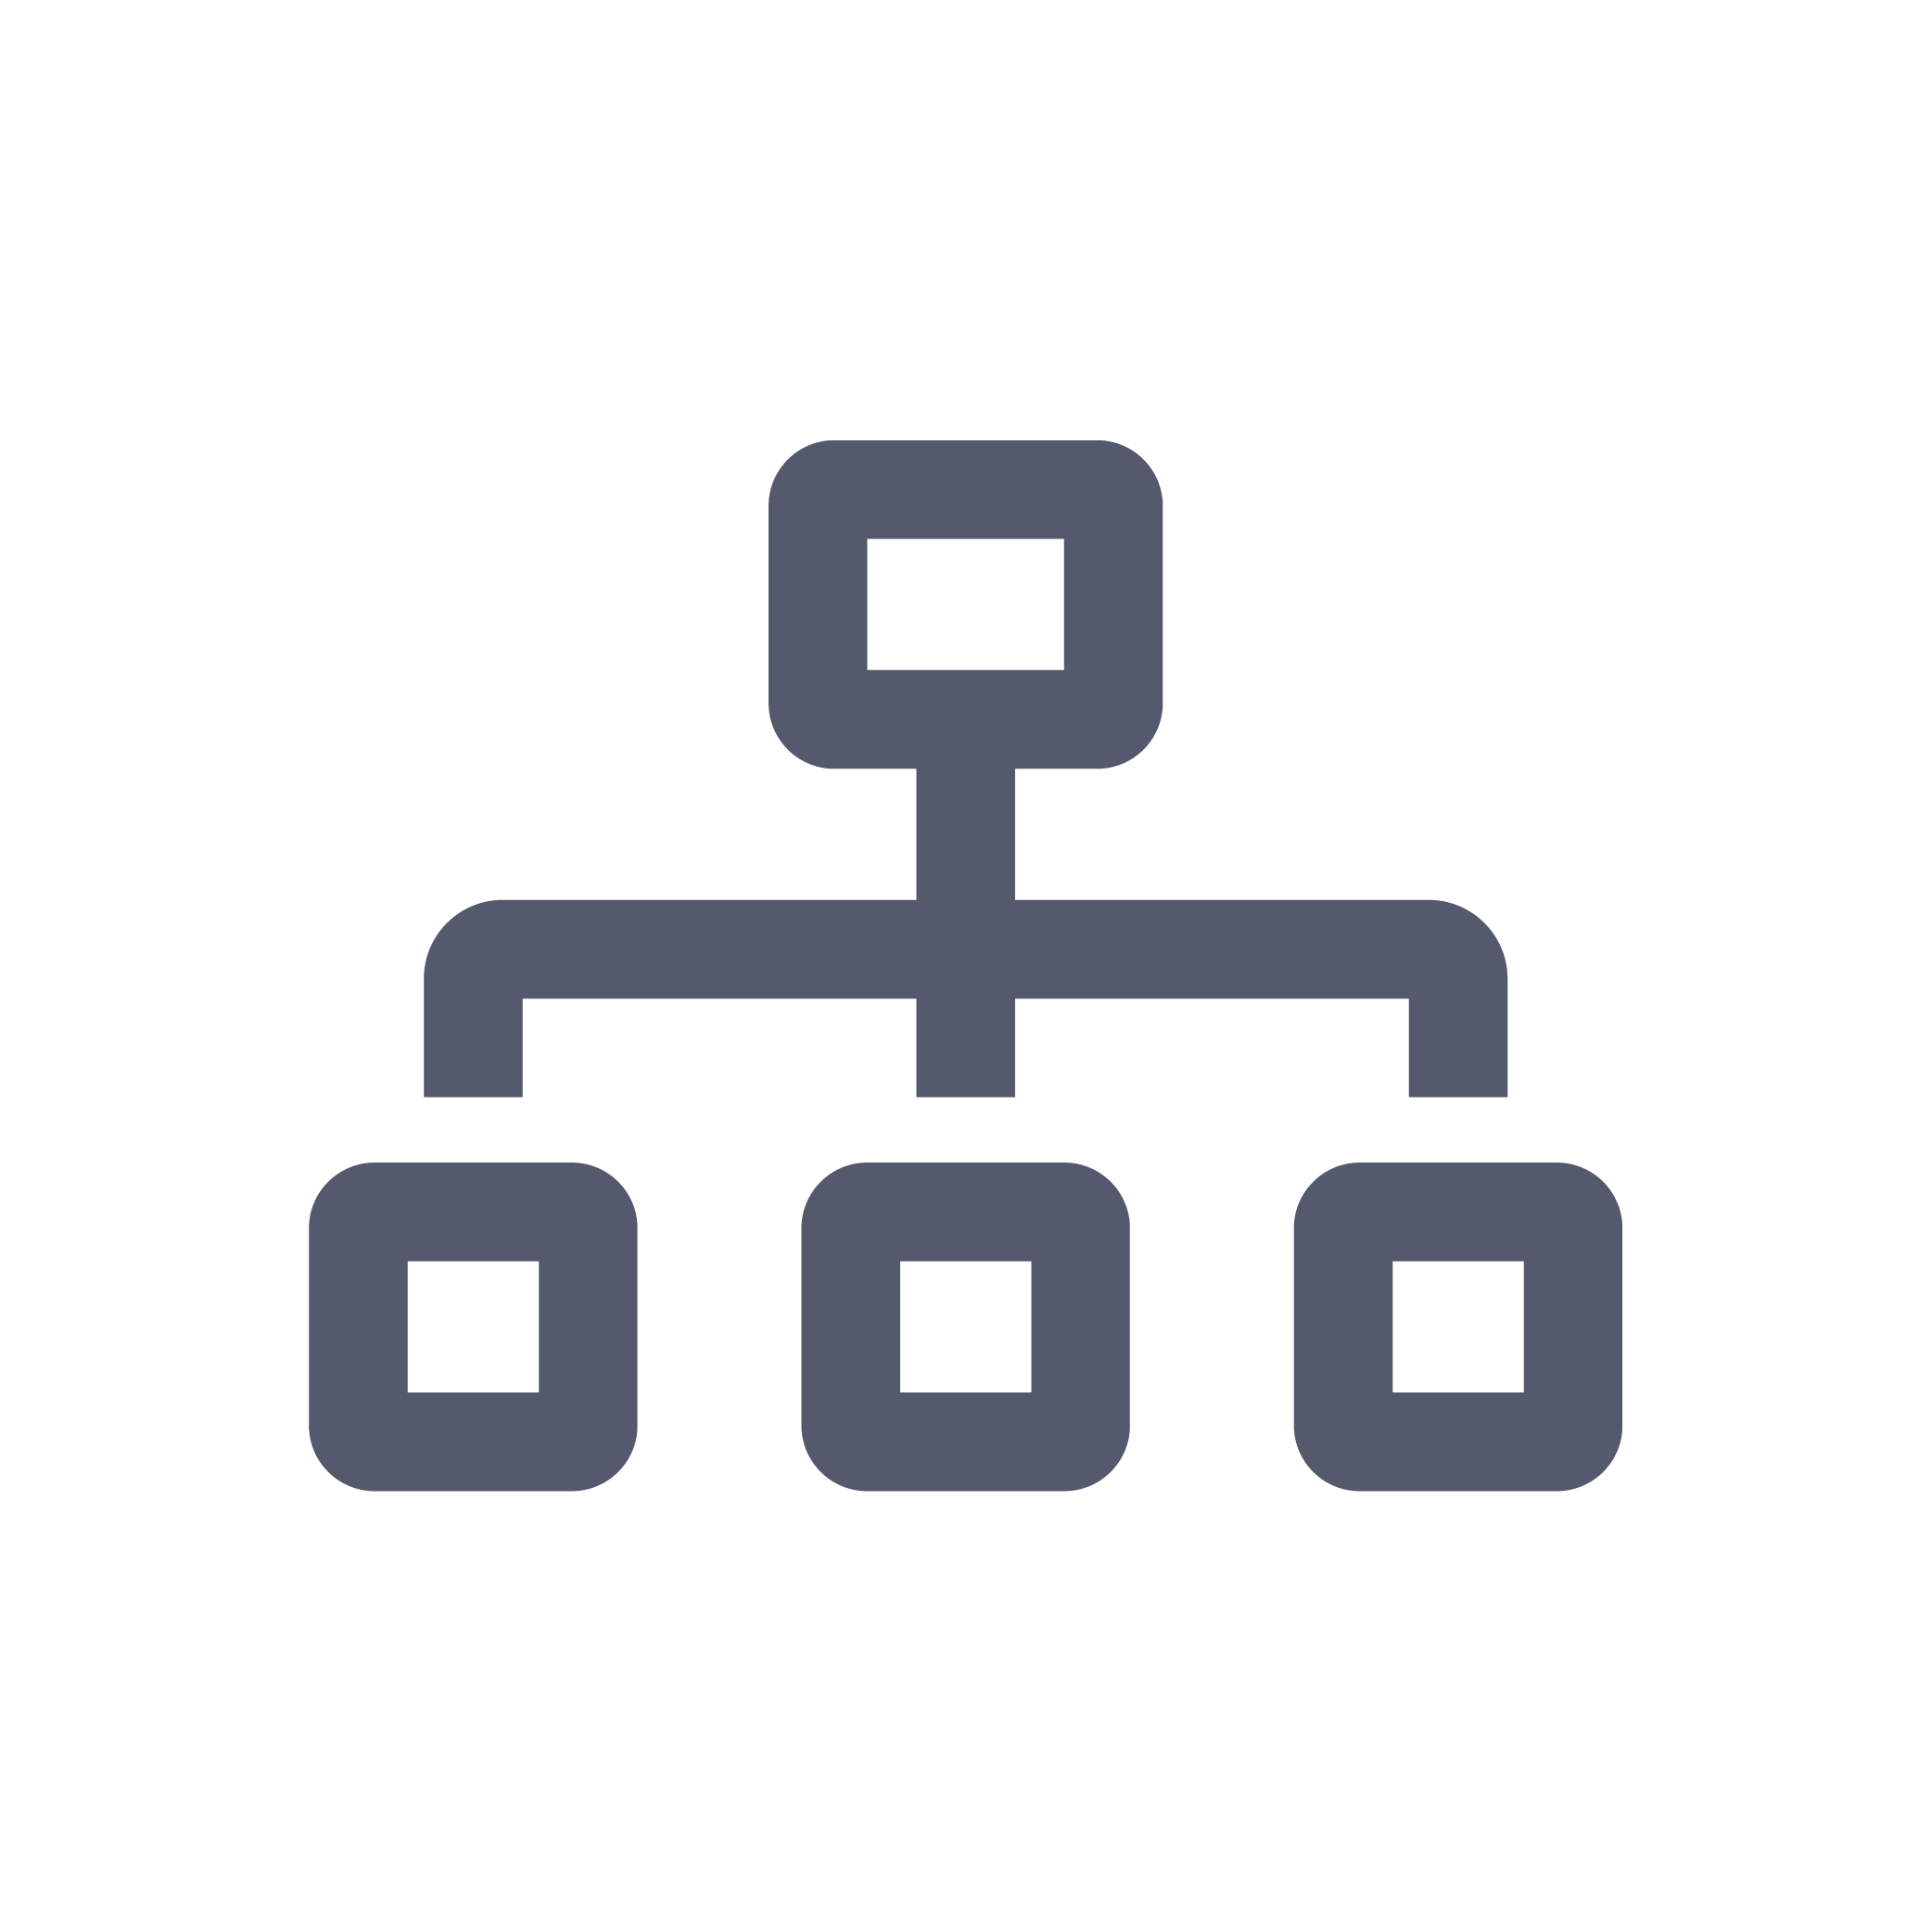 WebPageIcons-01.png